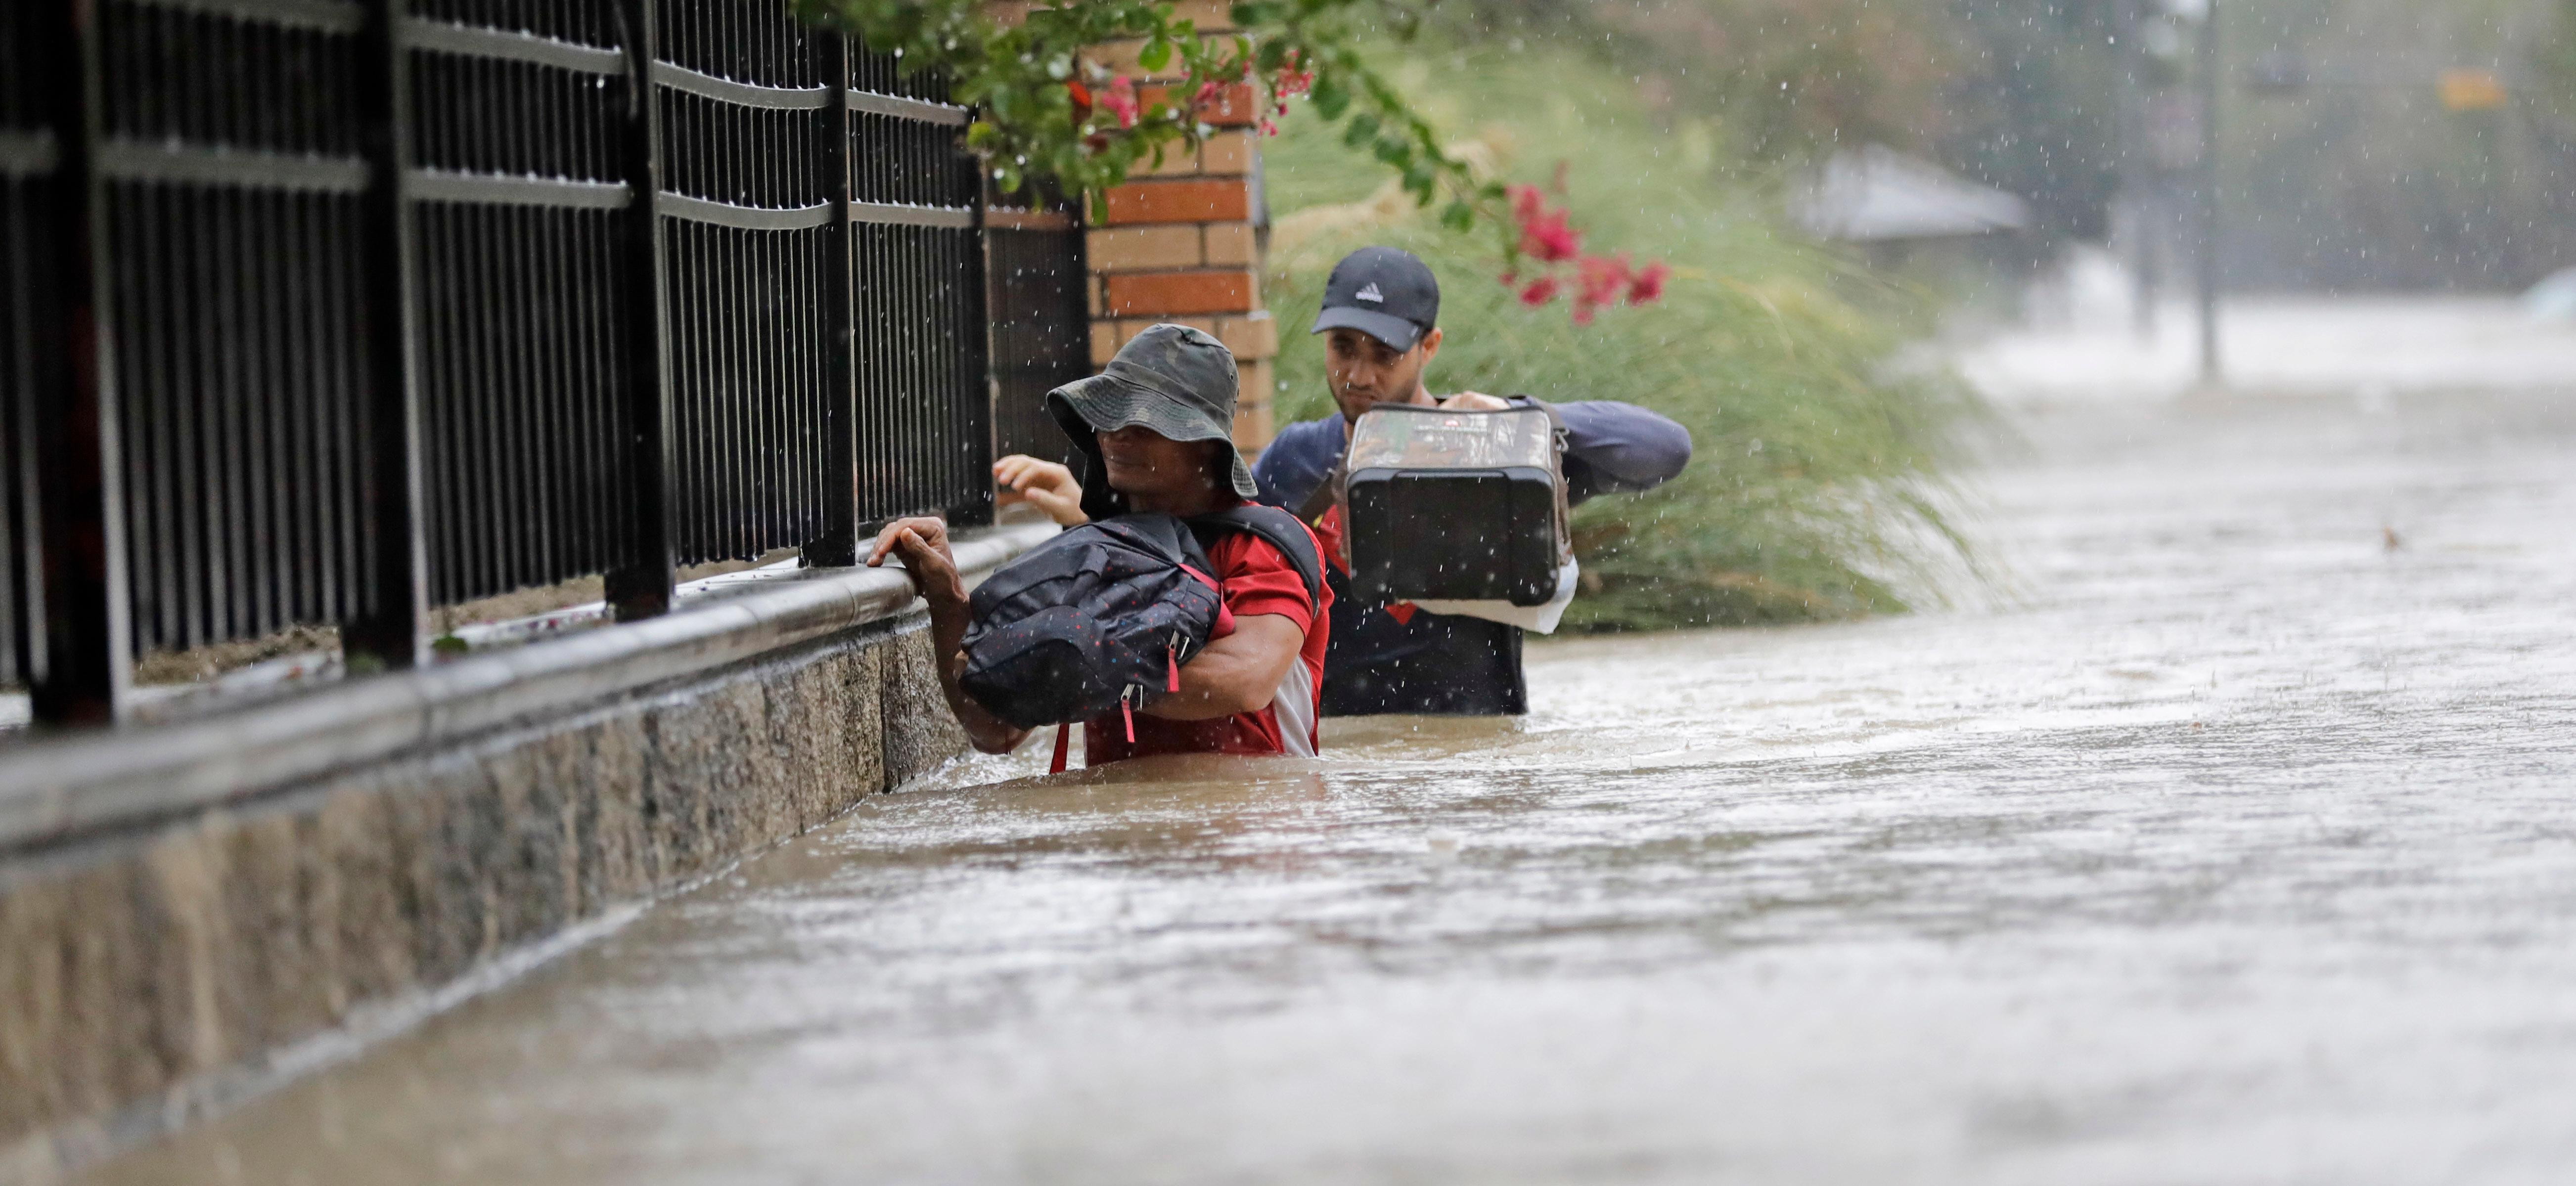 Residents wade through floodwaters from Tropical Storm Harvey Sunday, Aug. 27, 2017, in Houston, Texas. (AP Photo/David J. Phillip)